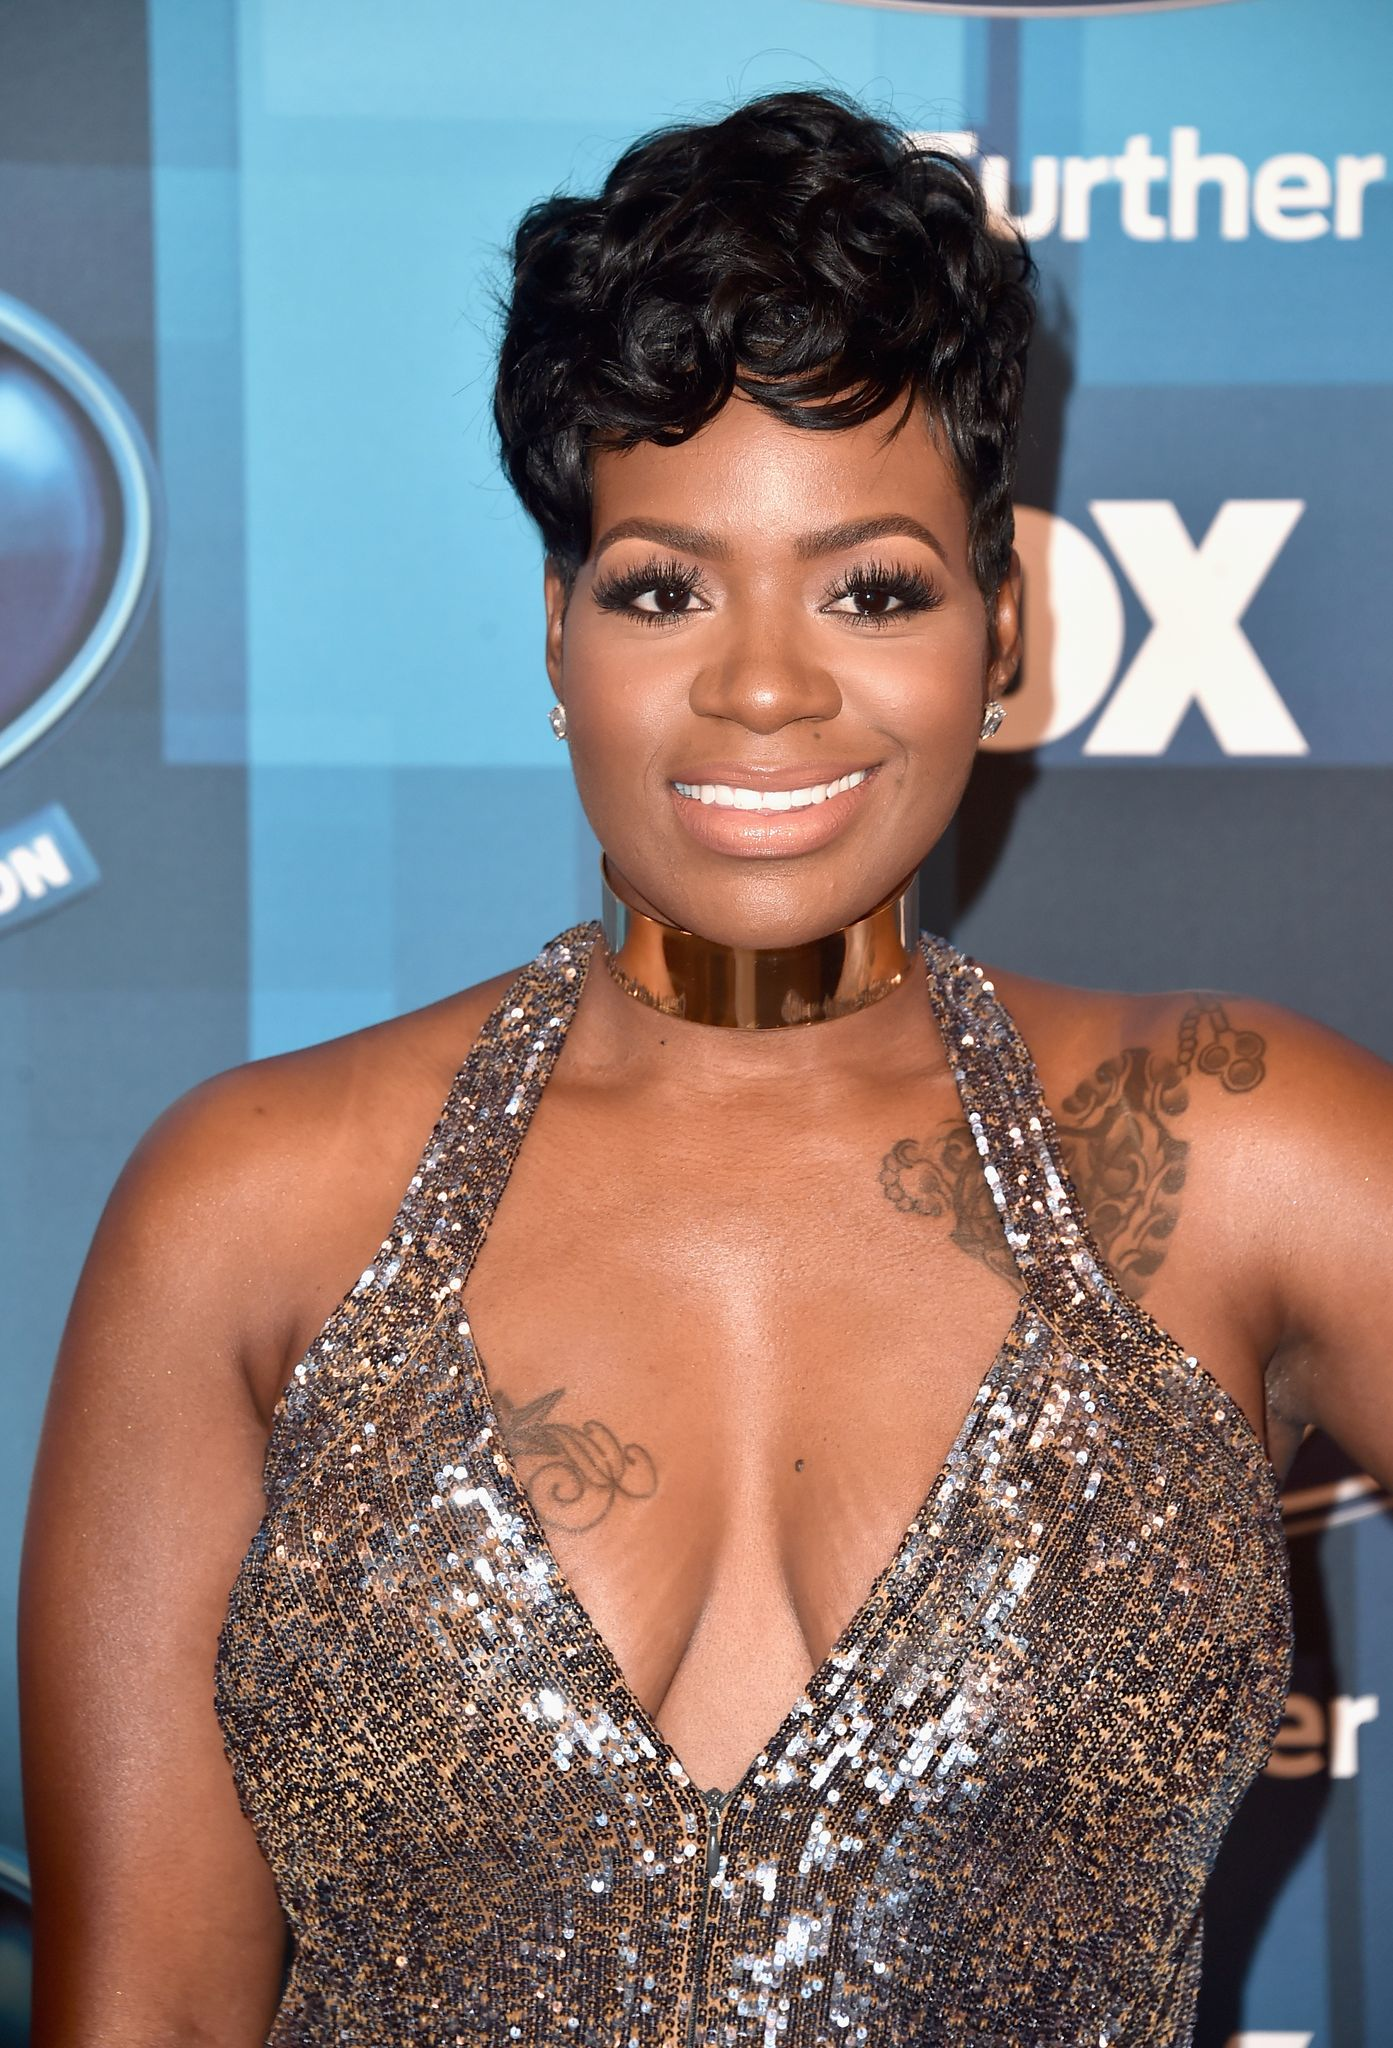 """Fantasia at the finale of """"American Idol"""" on April 7, 2016 in California. 